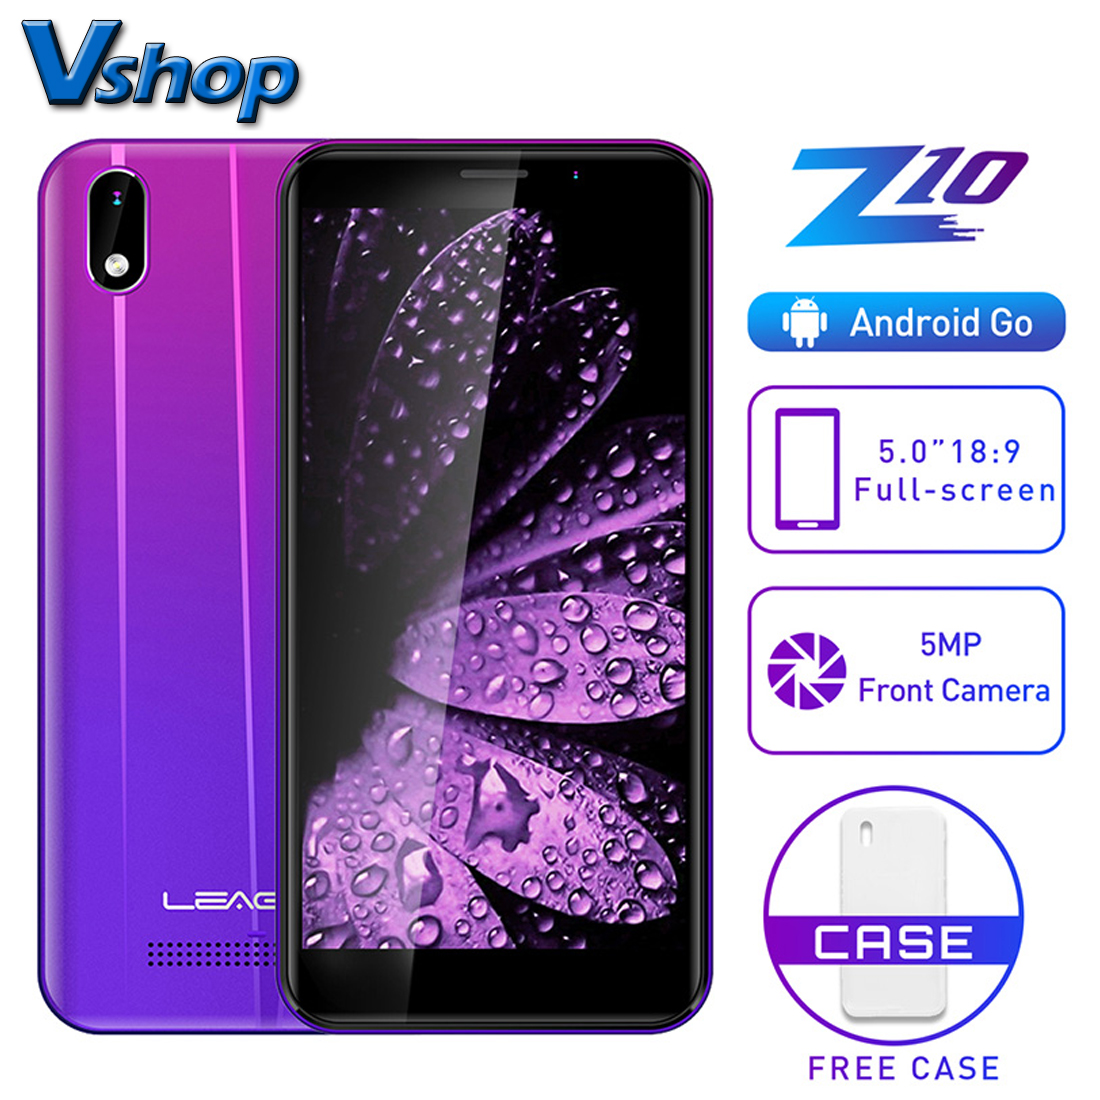 "LEAGOO Z10 Android Mobile Phone 5.0"" 18:9 Full Screen 1GB RAM 8GB ROM MT6580 Quad Core 2000mAh 5MP Camera Dual SIM 3G Smartphone(China)"